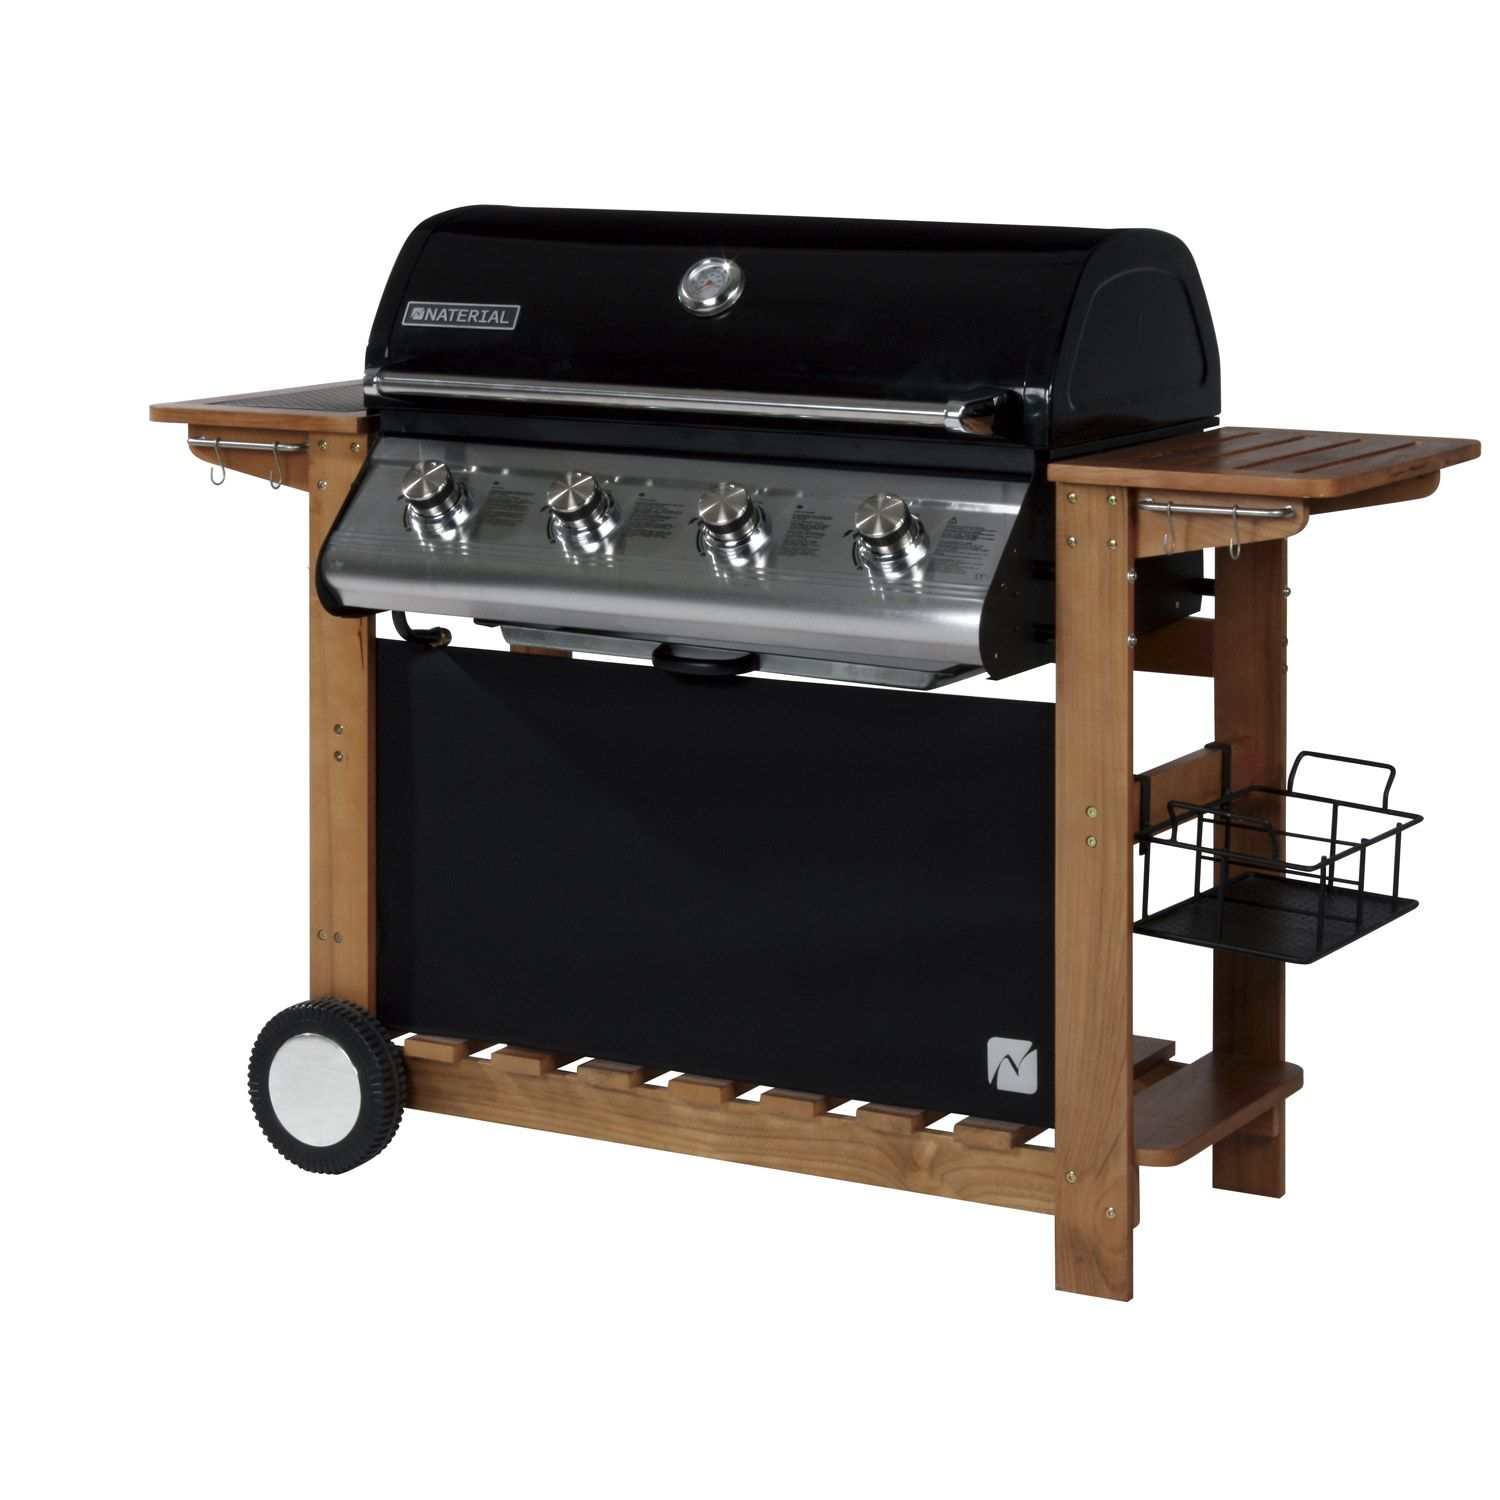 barbecue au gaz naterial wallaby acquisti pinterest